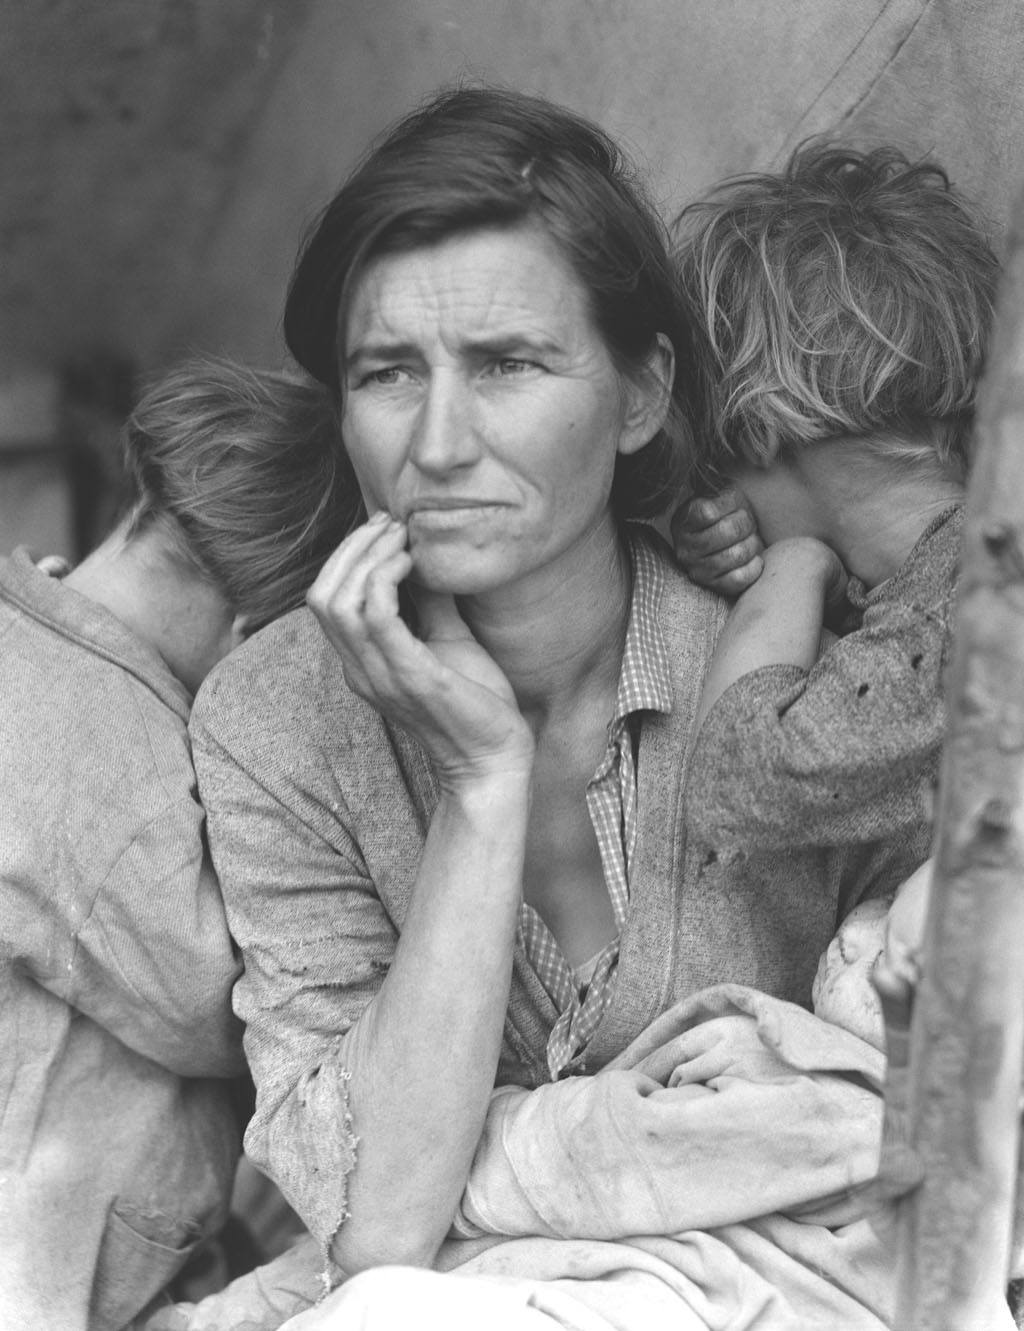 Florence Owens Thompson, mother of 7 young kids, lost her job in 1931 and  tried her luck with her family in California. It was pictured by Dorothea  Lange in ...